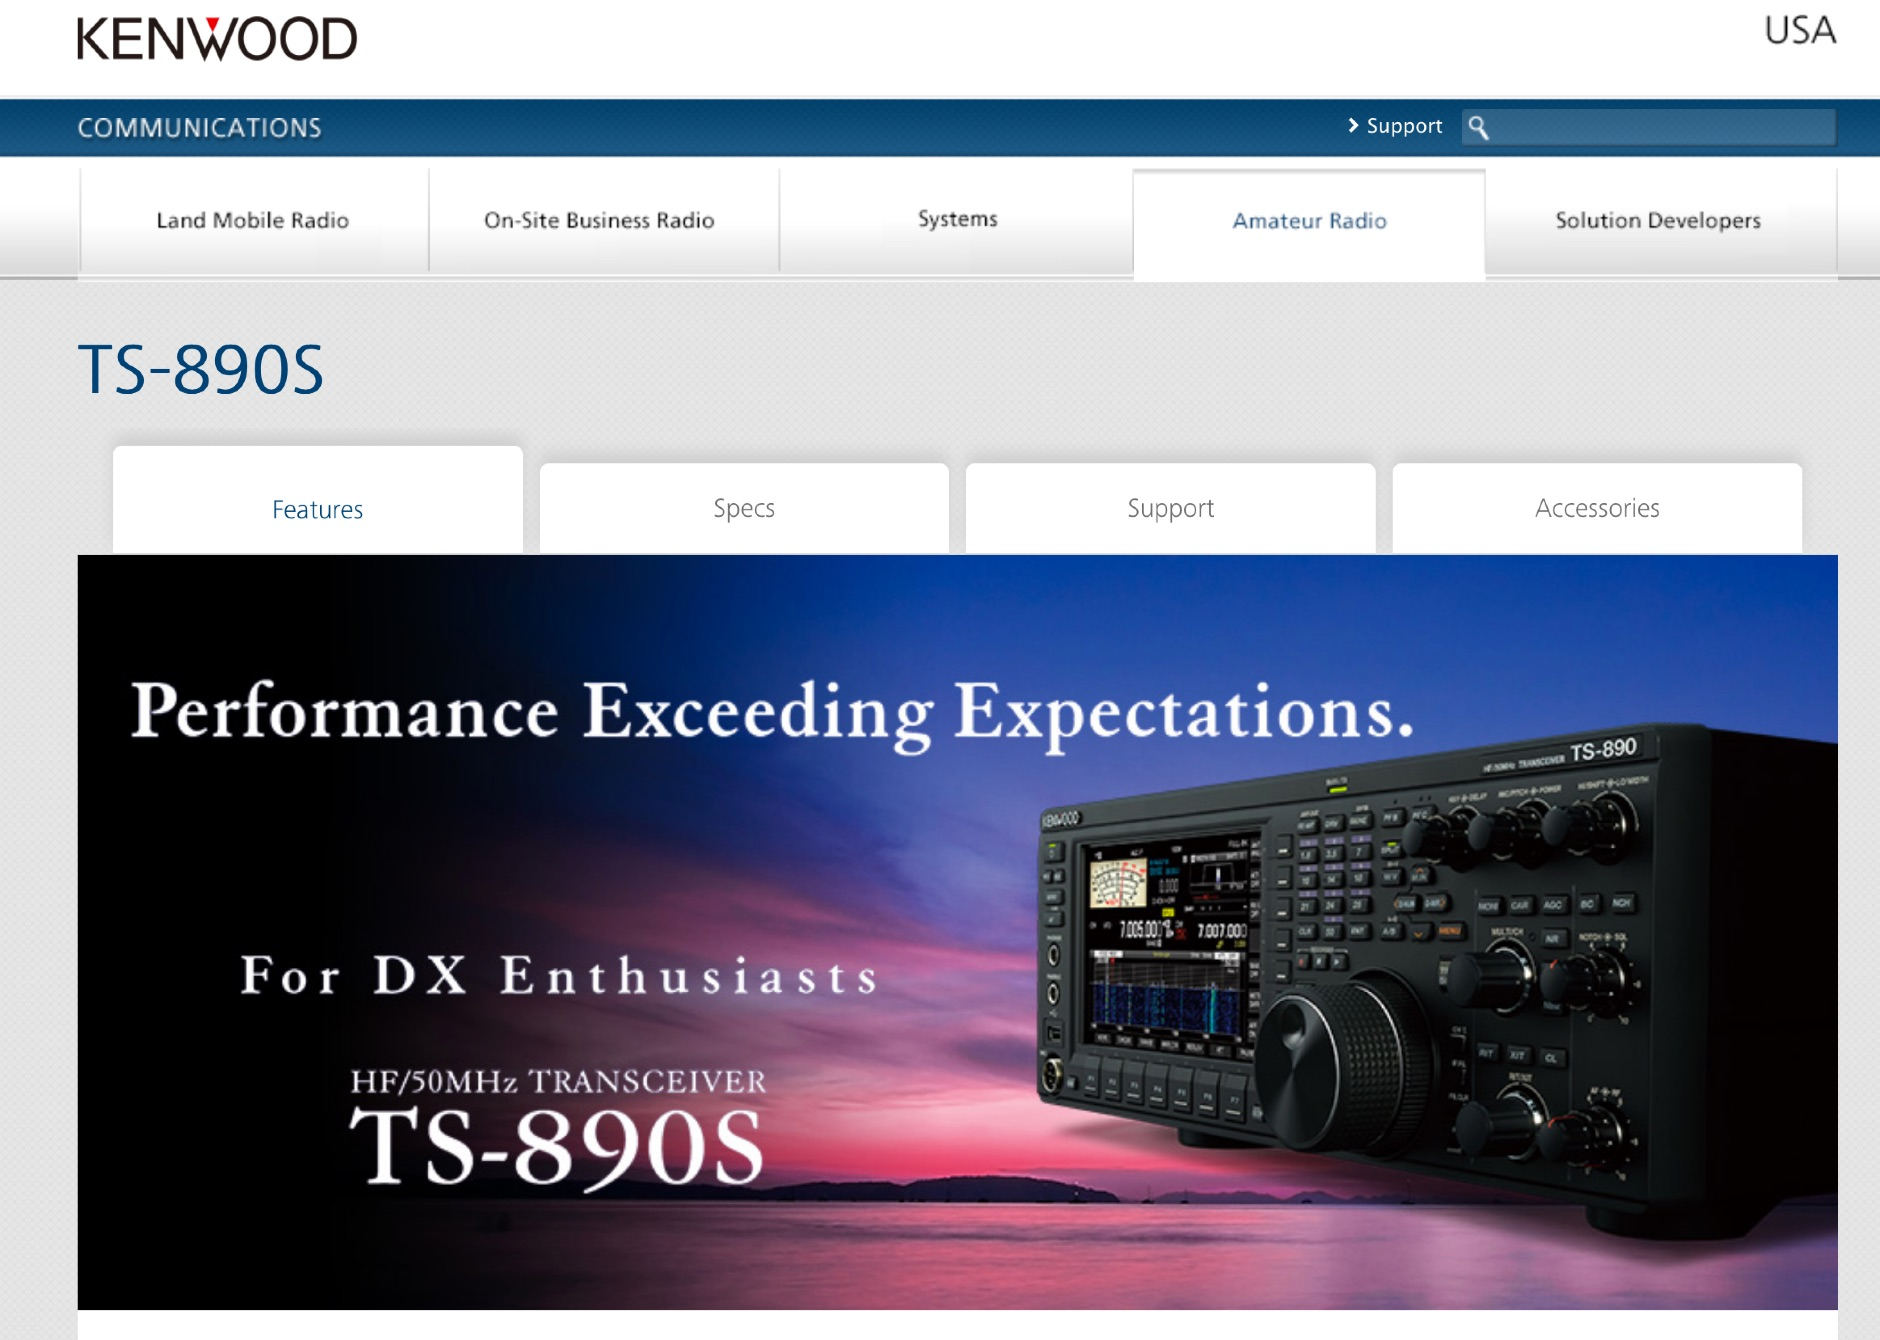 DXZone Kenwood TS-890S Official Web Site